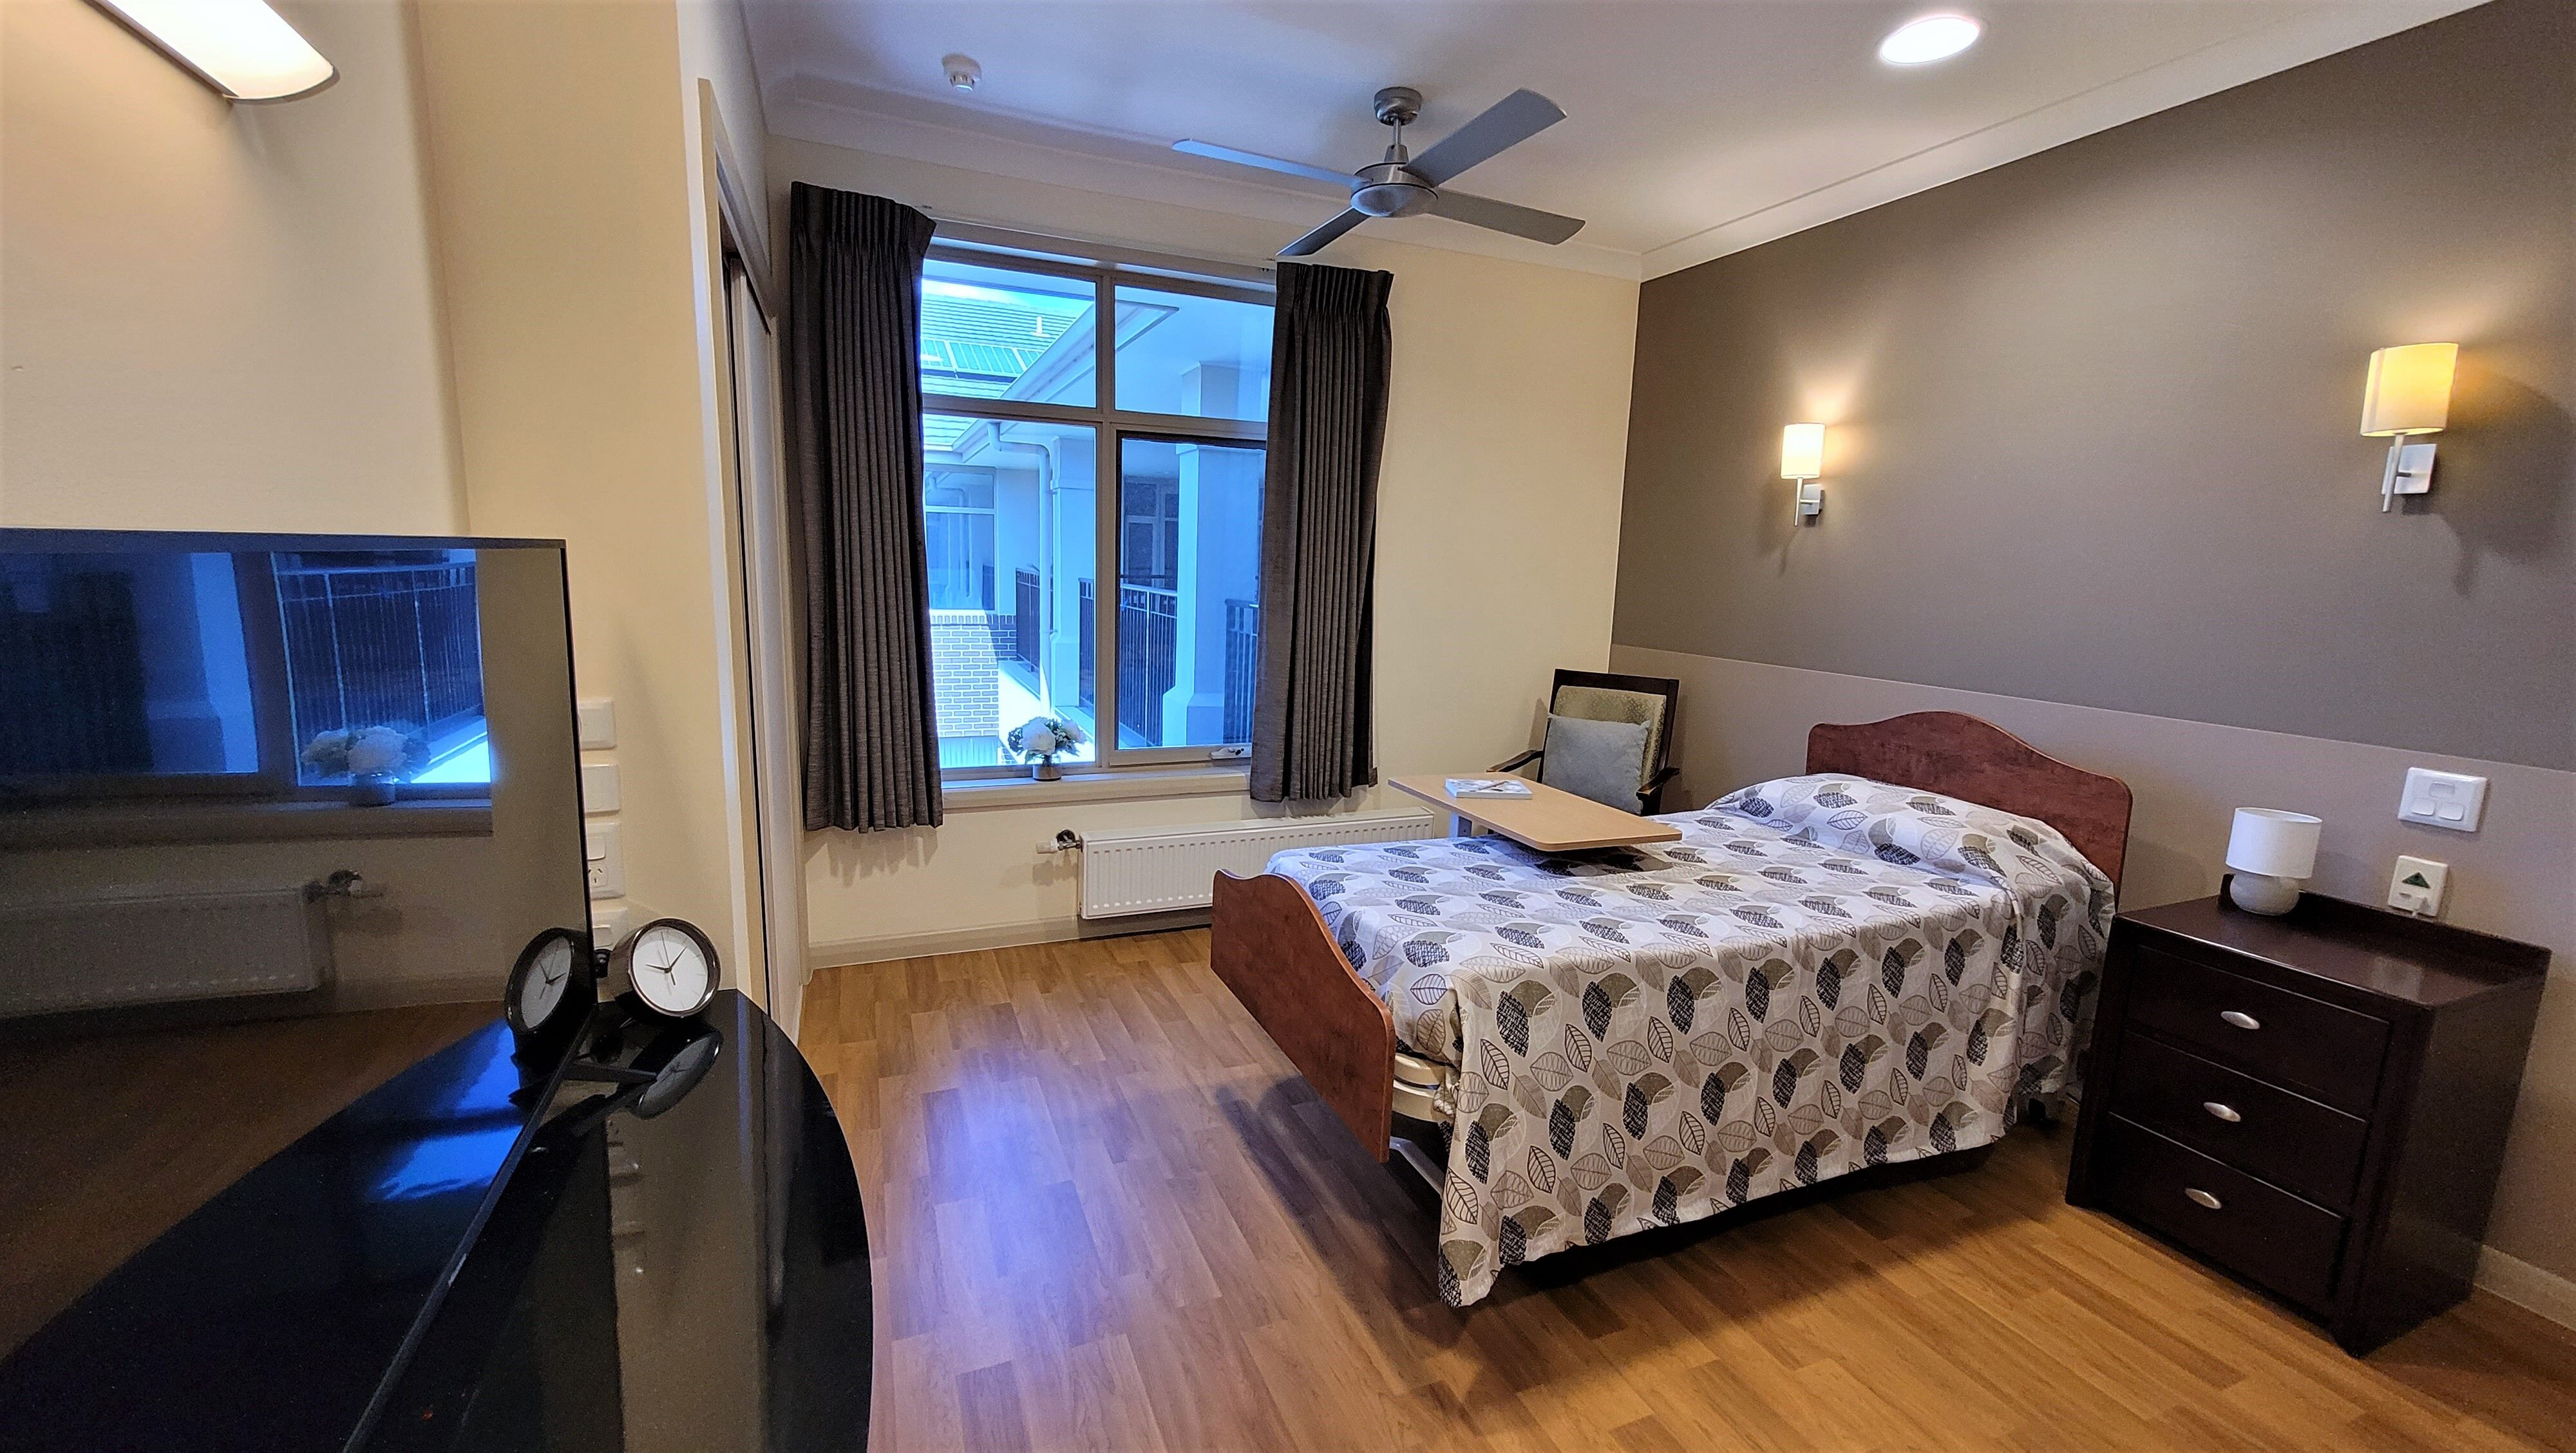 Bethel Aged Care, Mill Park VIC 3082 - Bedroom Example 2